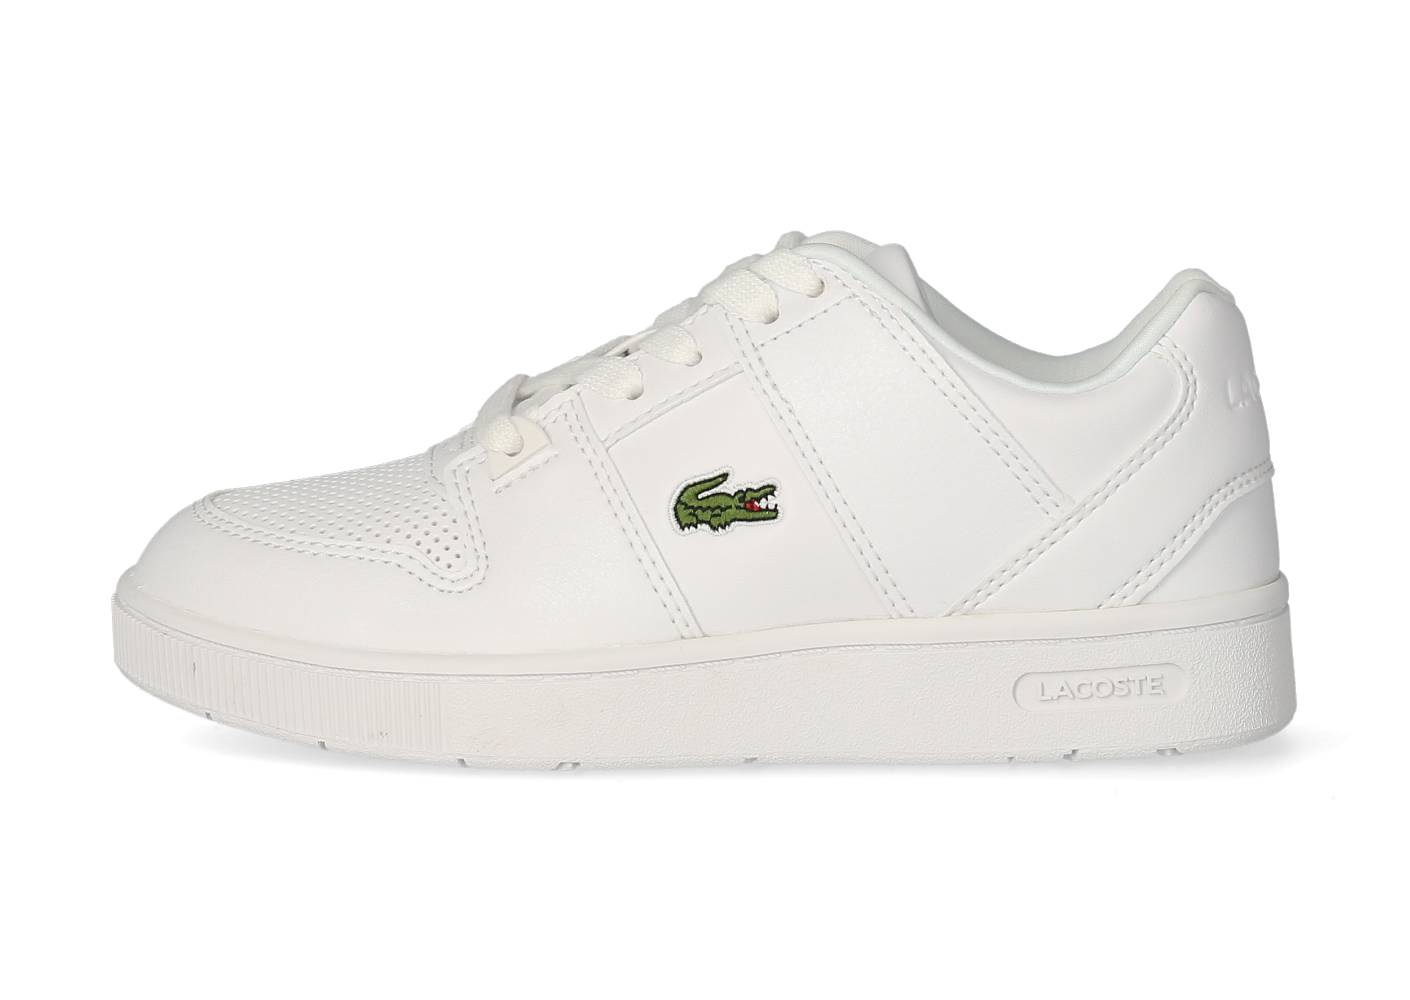 Lacoste Tennis Lacoste Thrill Enfant Blanche 31